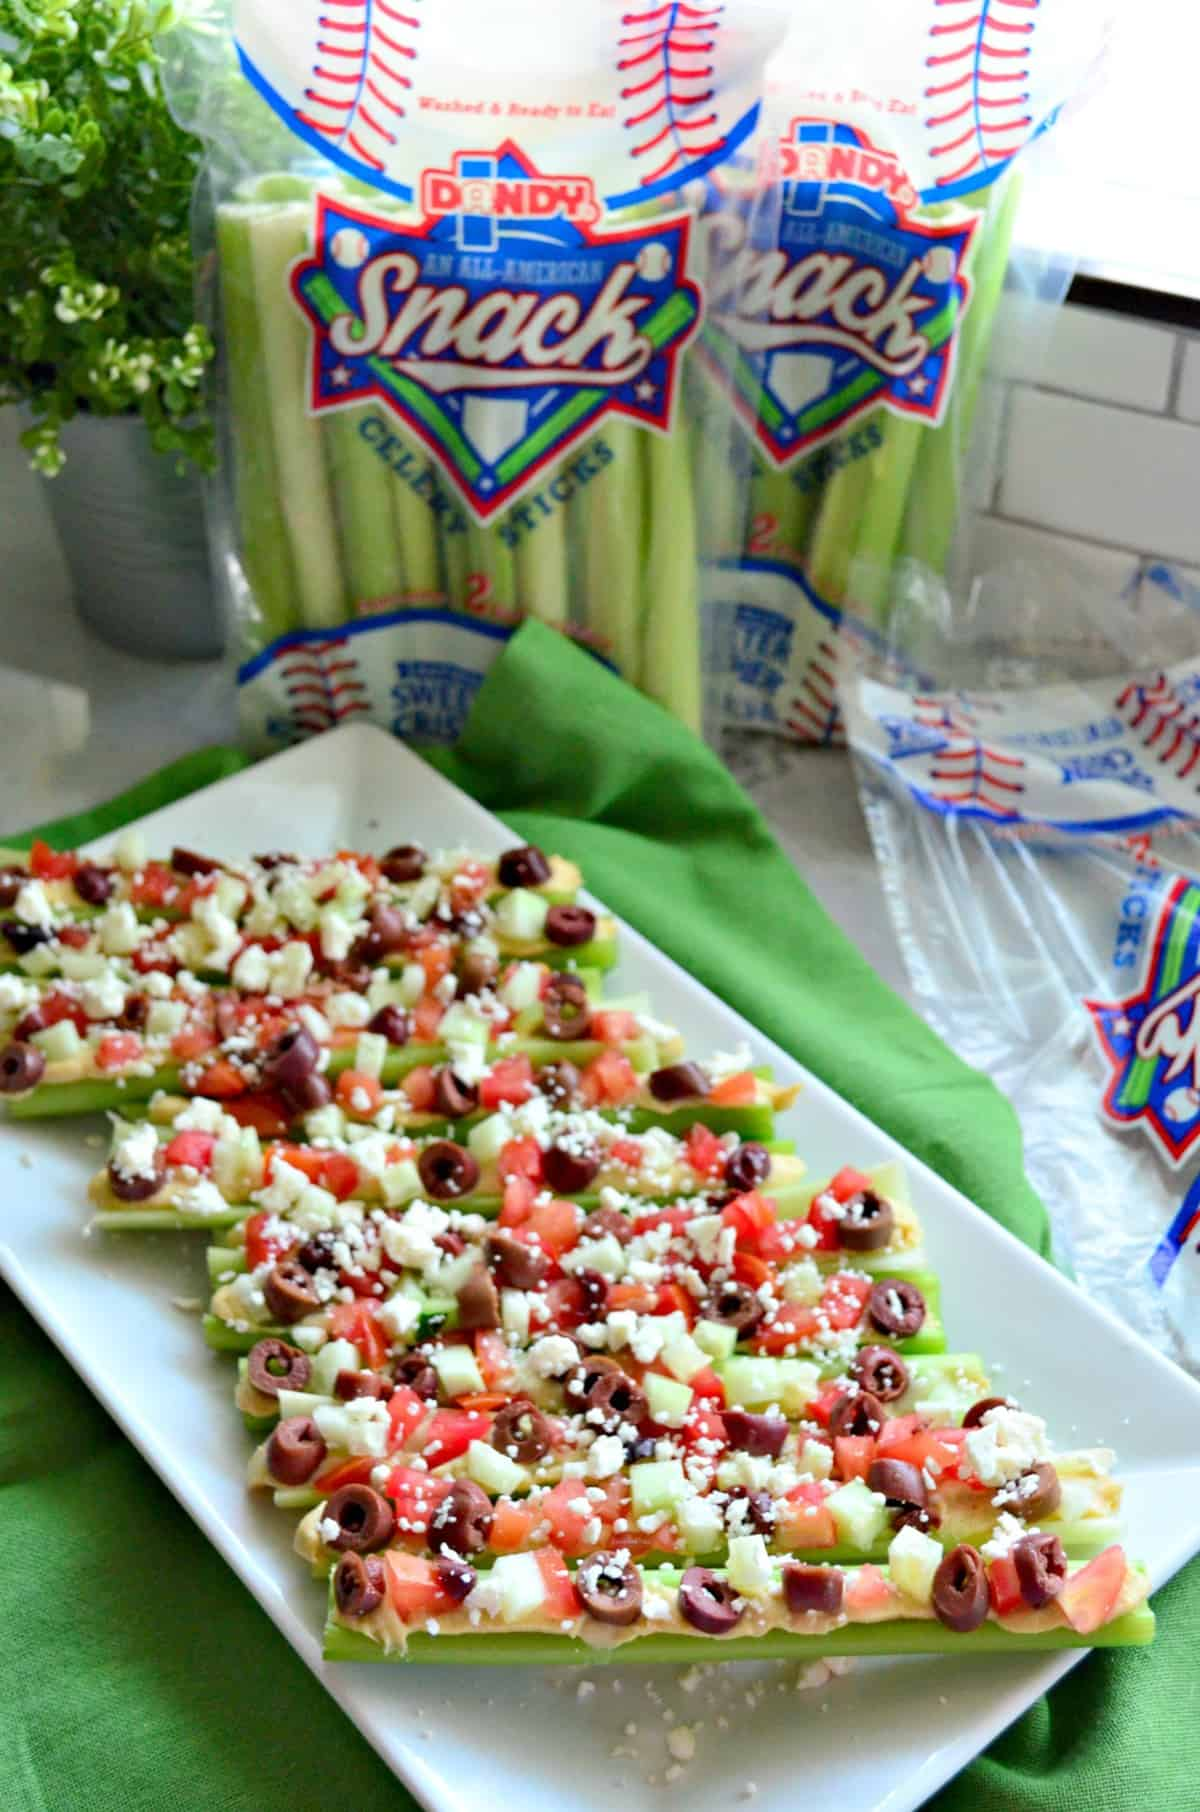 Plated celery sticks stuffed with hummus, feta, kalamata, and tomato in front of fresh celery.